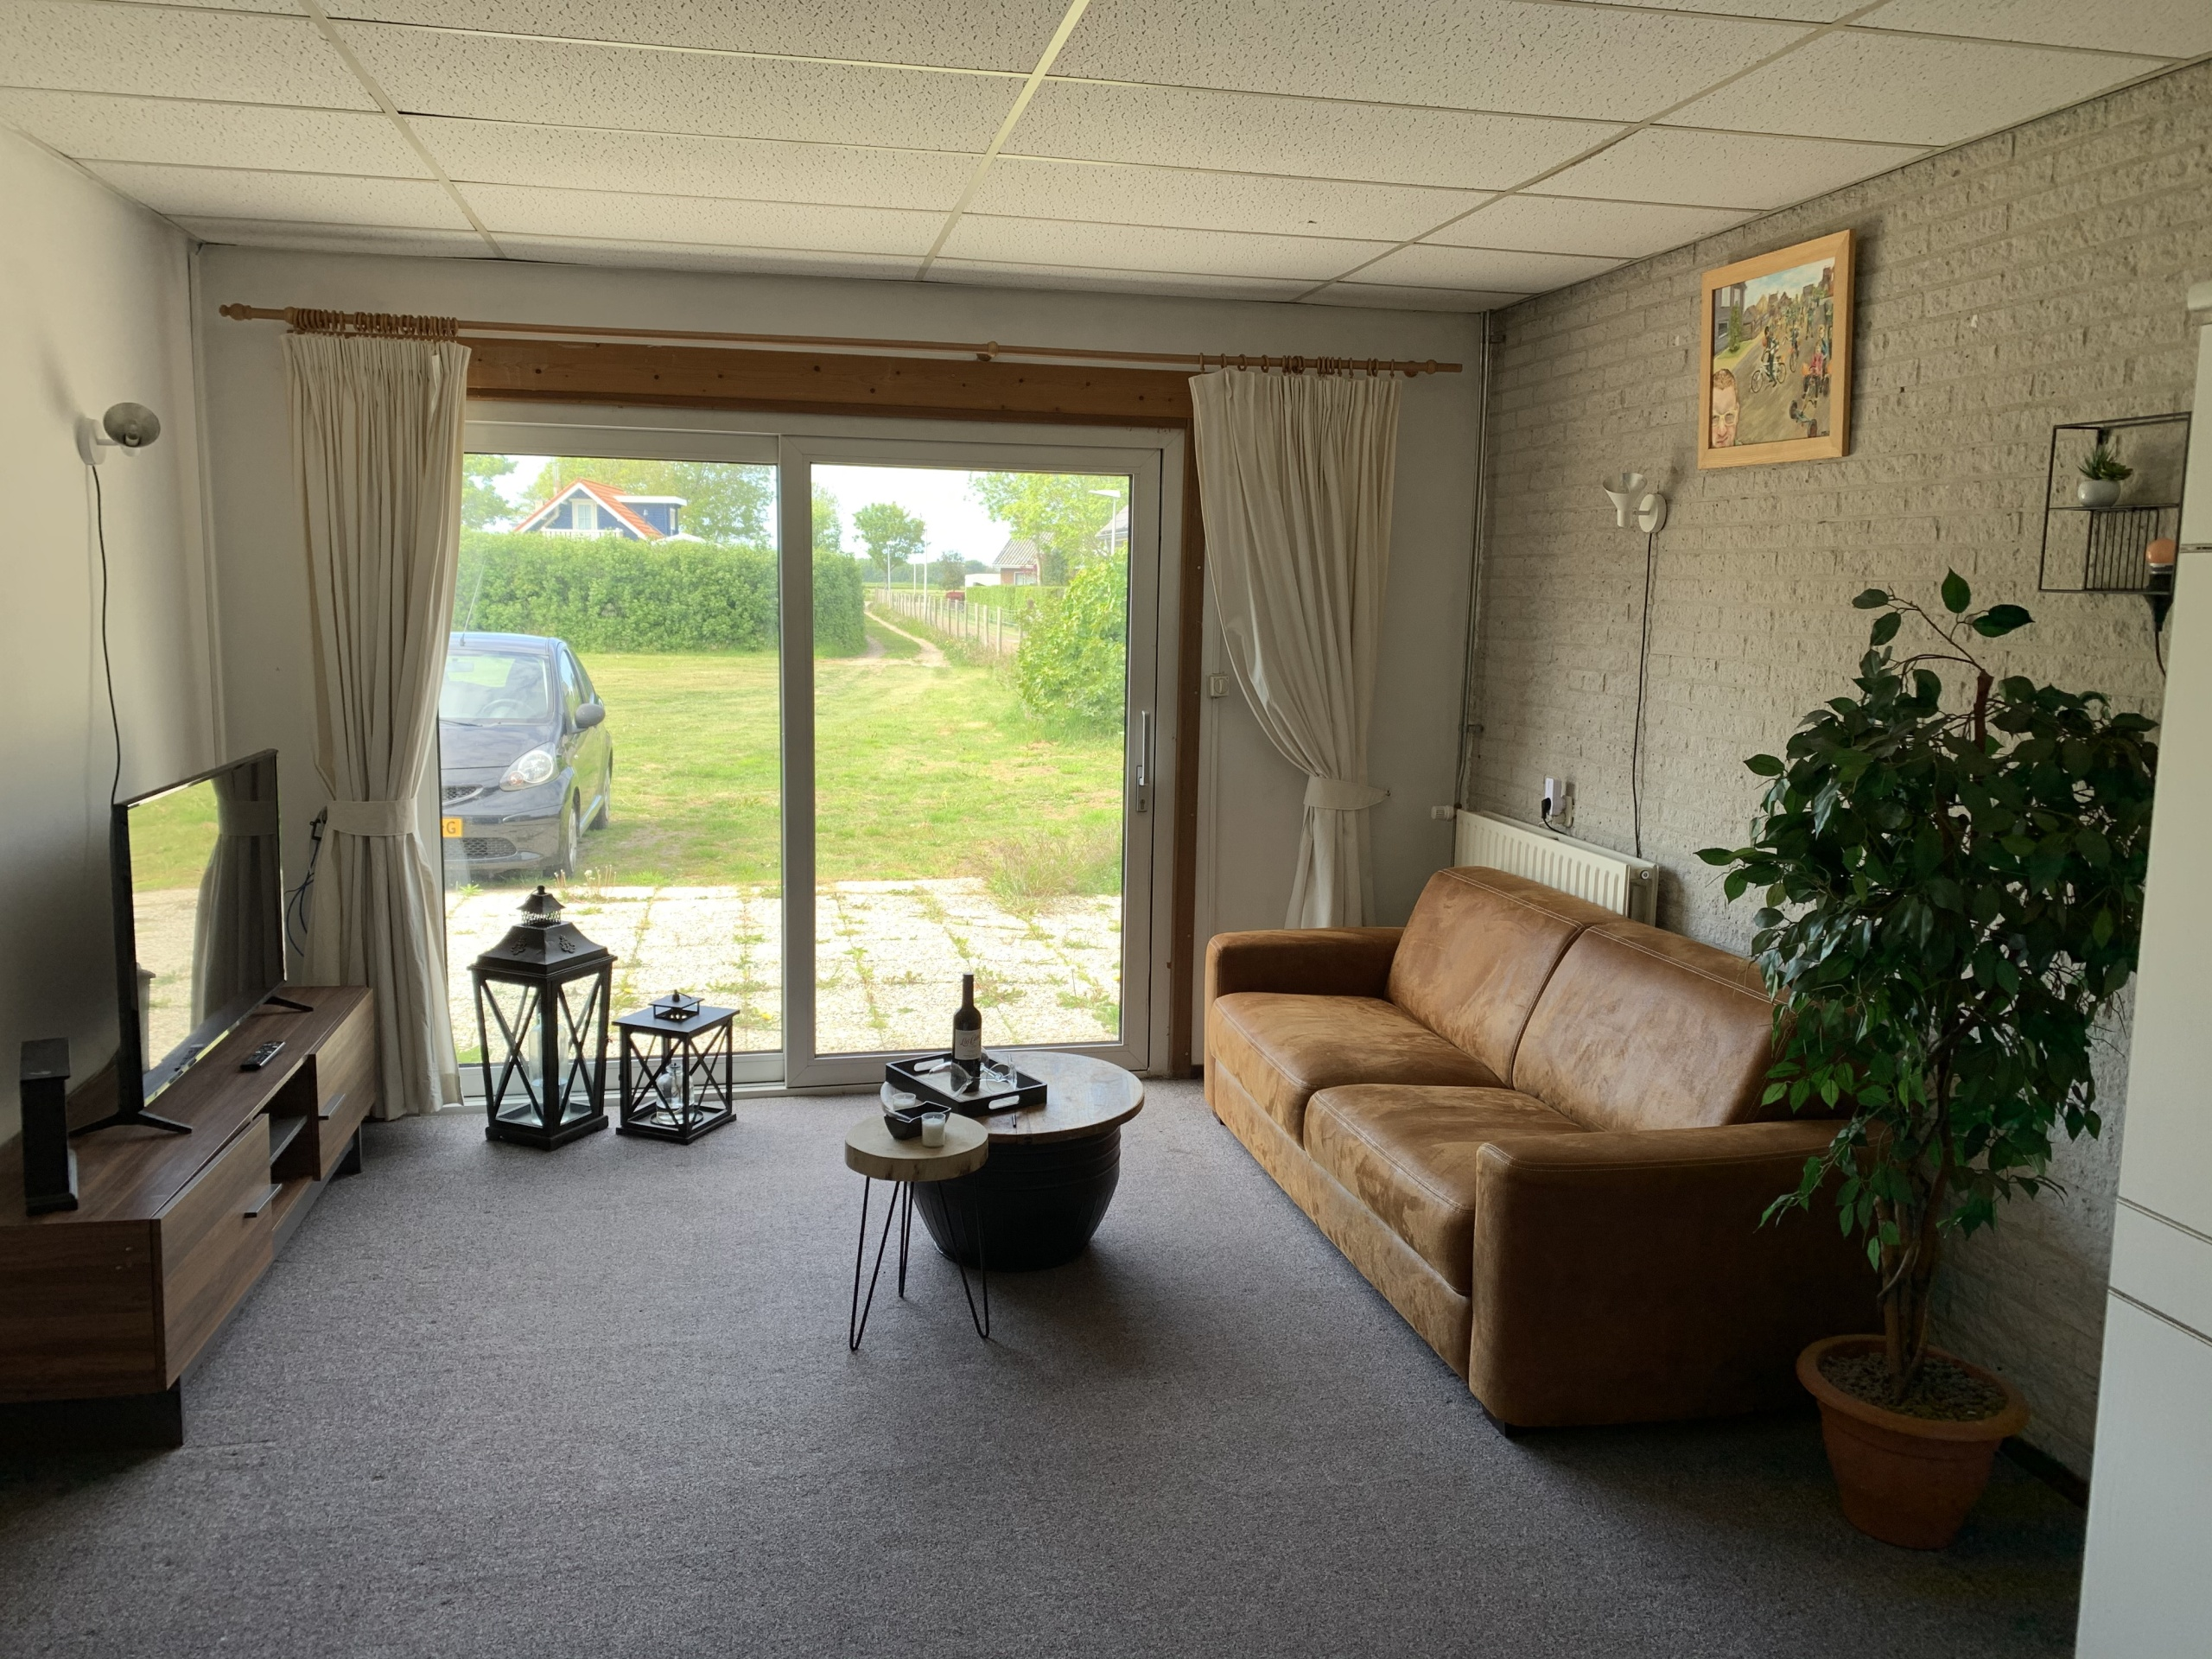 B&B room on the ground floor in the center of De Cocksdorp